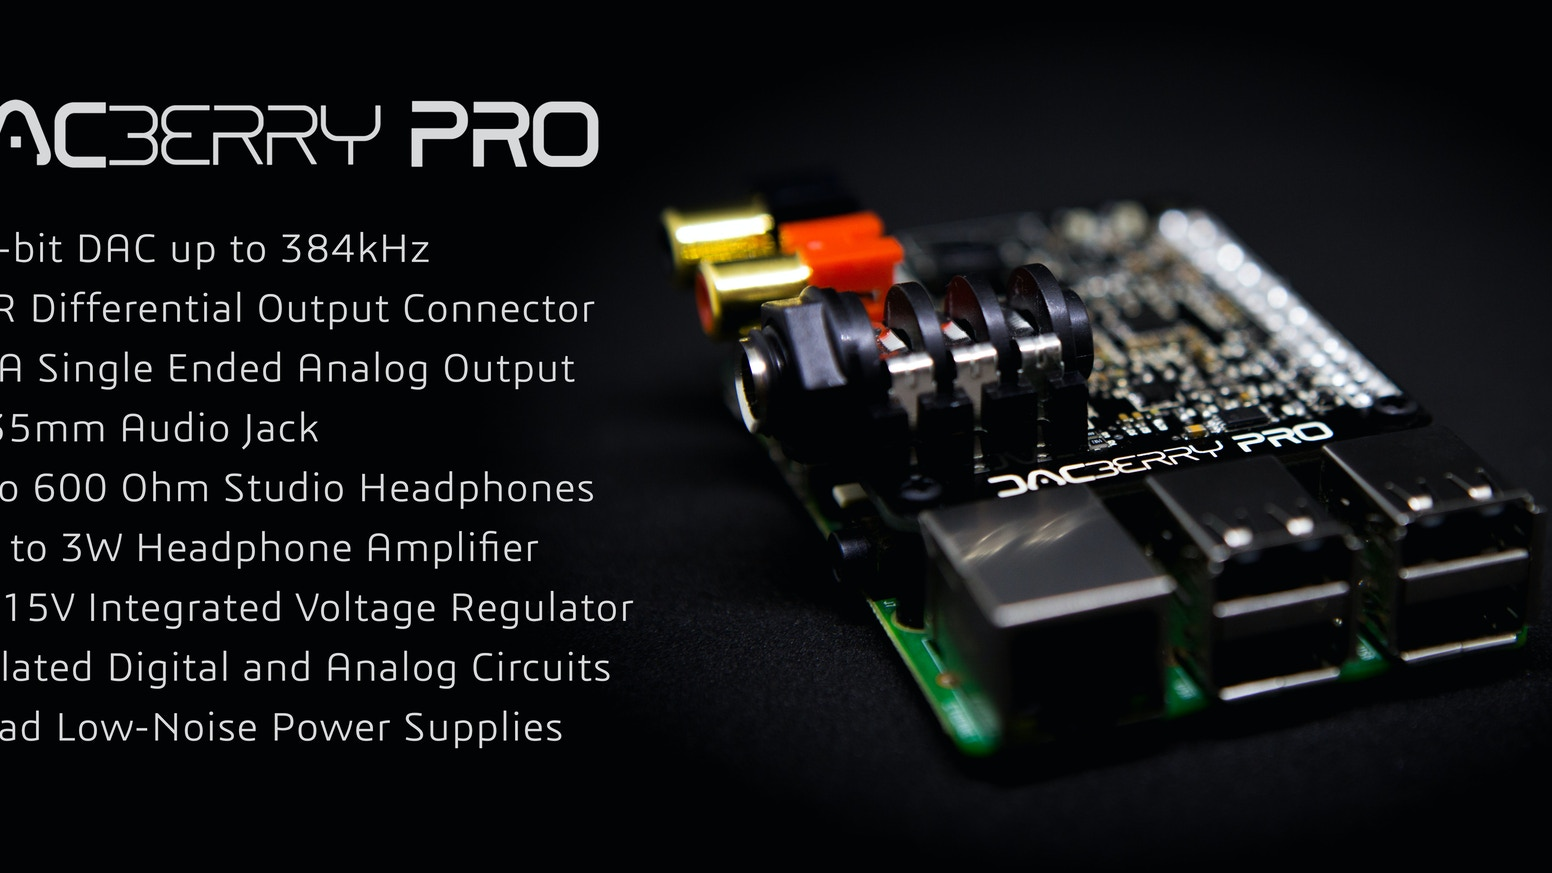 Introducing one of the most advanced soundcards for Raspberry Pi. A professional device that will bring you an incredible audio quality